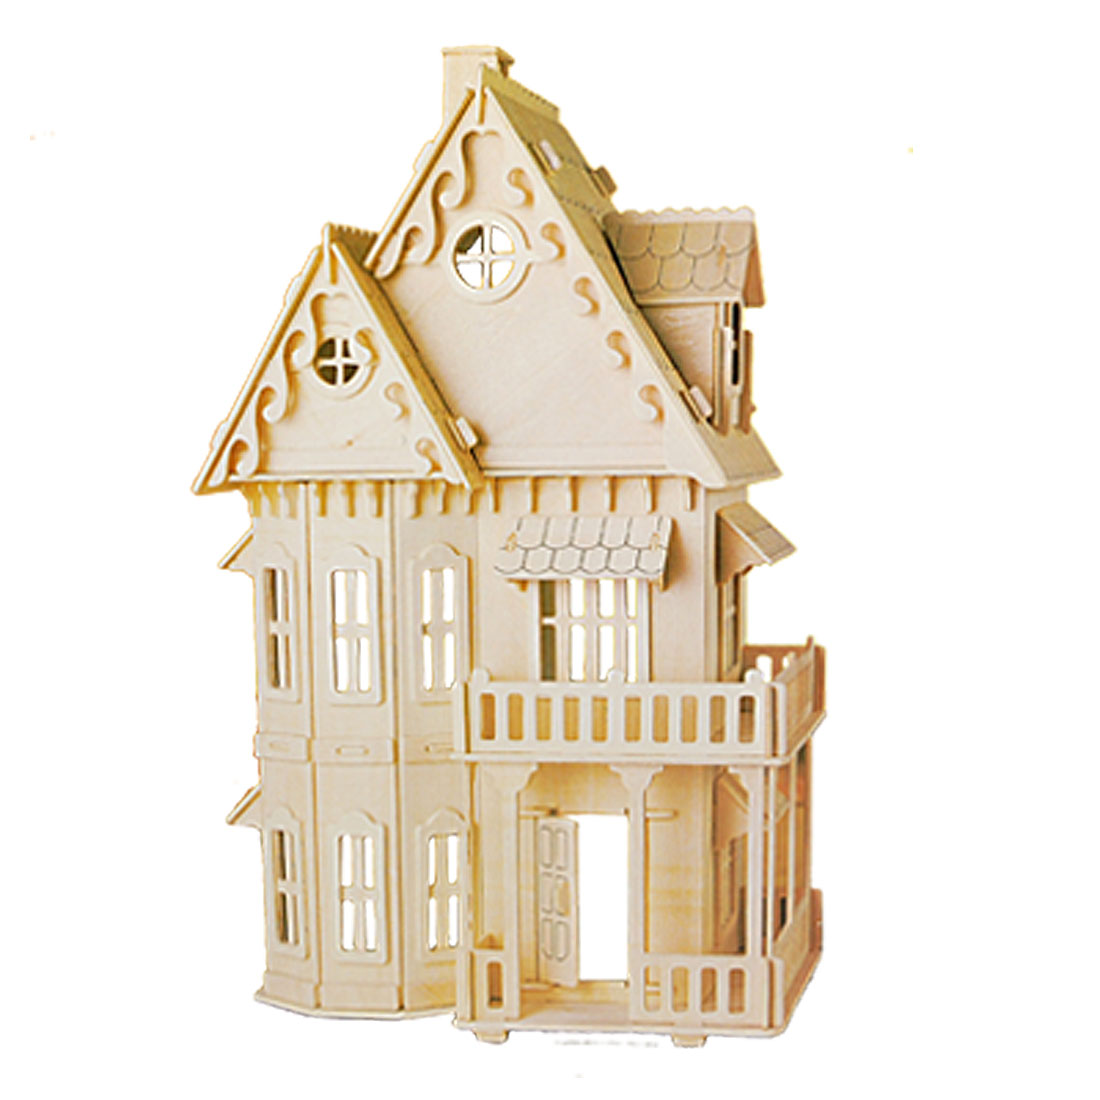 3D Wood Craft Gothic House Construction Kit for DIY